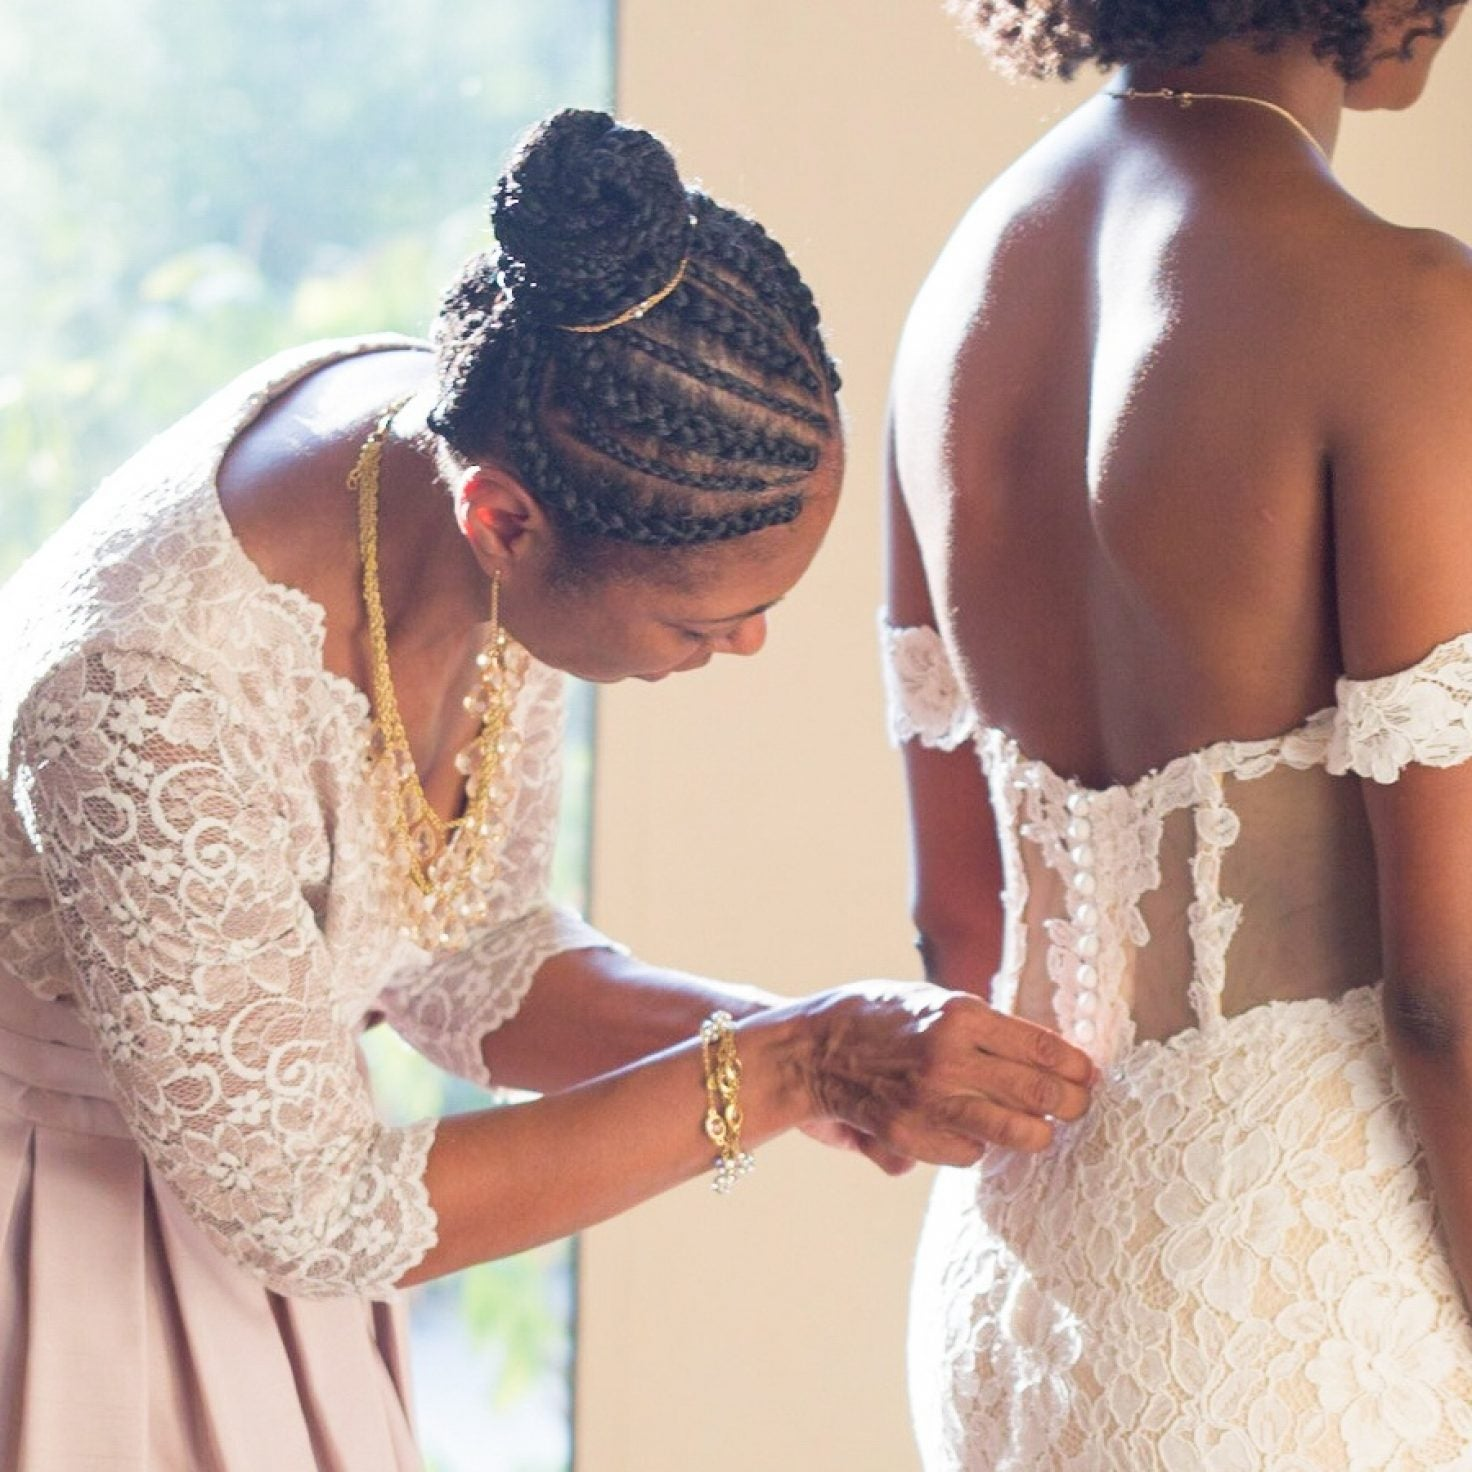 Anomalie CEO Guarantees That Wedding Dresses Will Make It On Time Amid COVID-19 Crisis